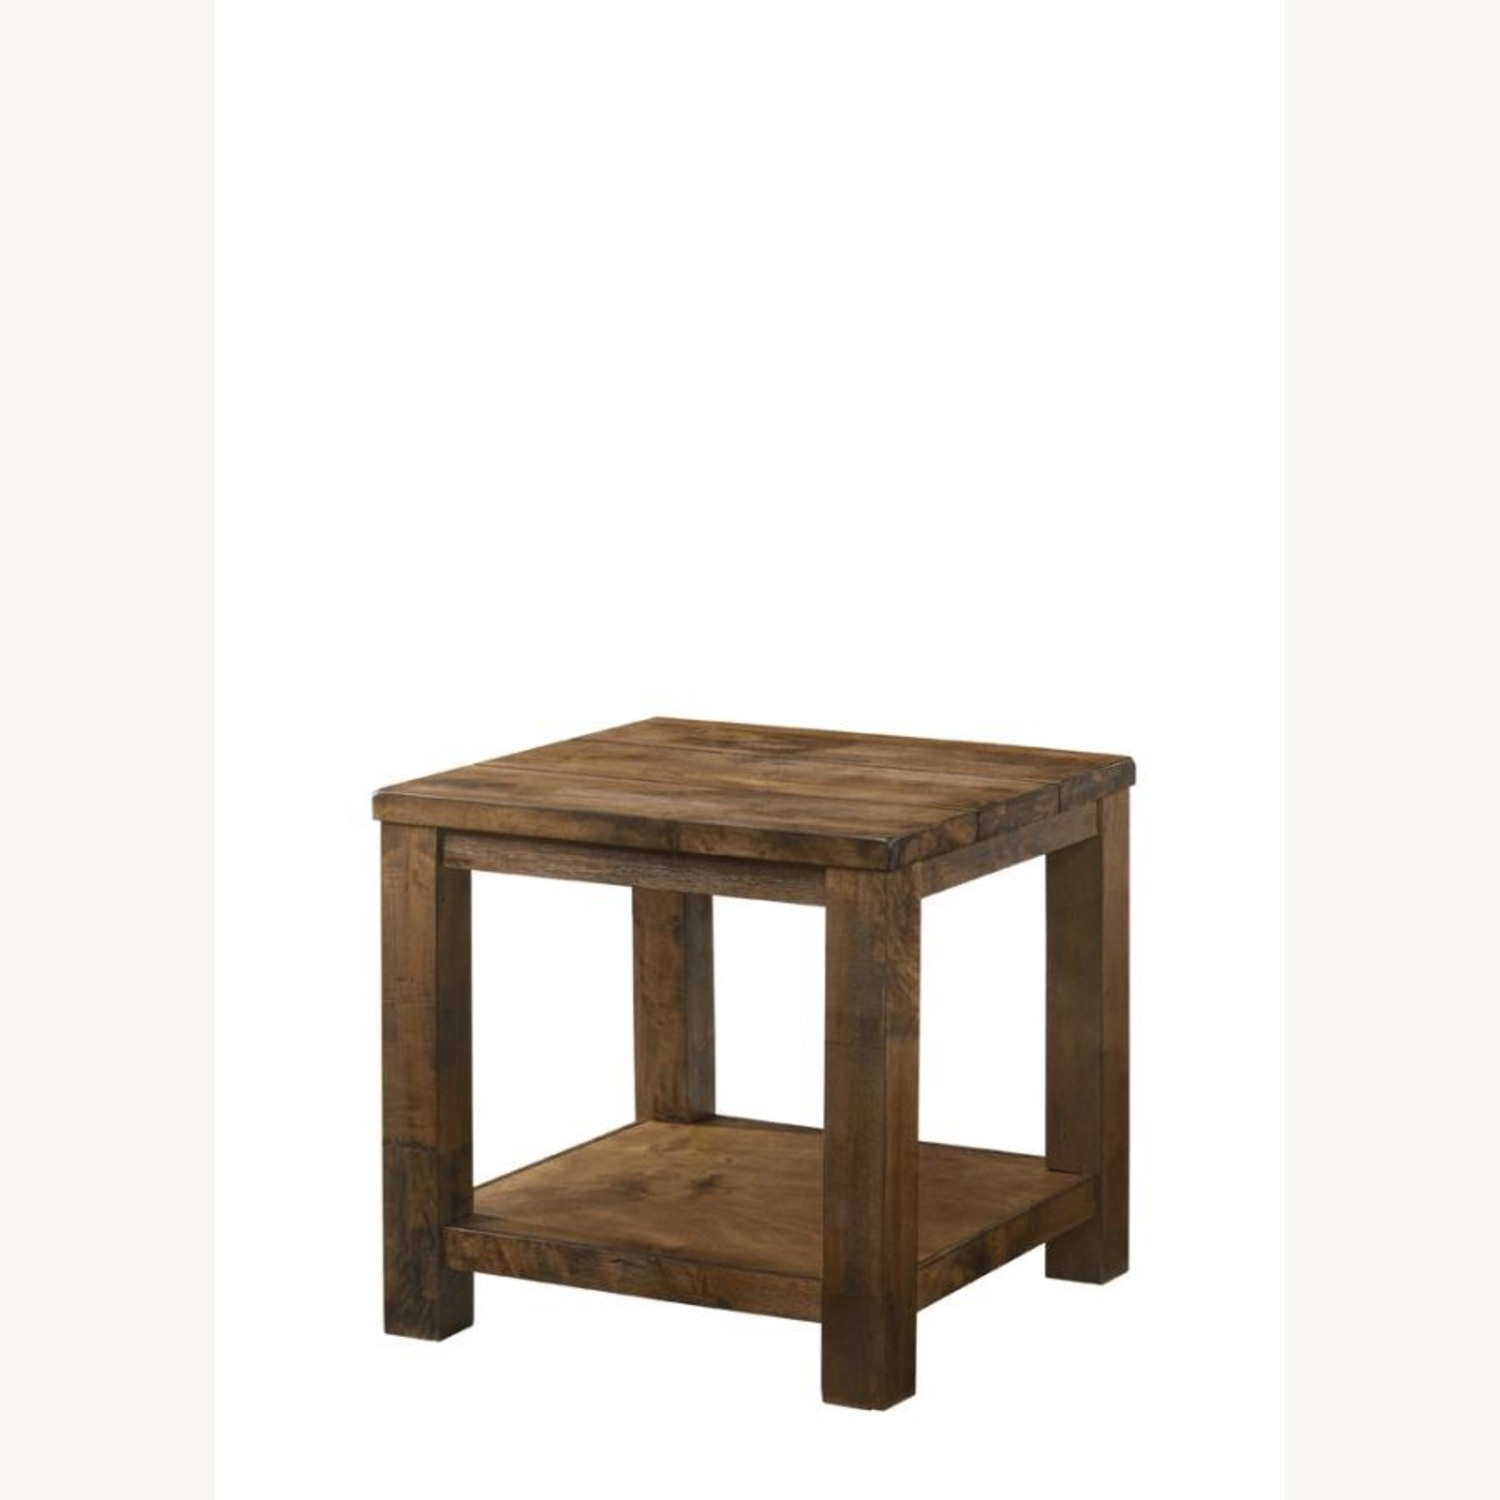 End Table In Rustic Golden Brown Wood - image-0